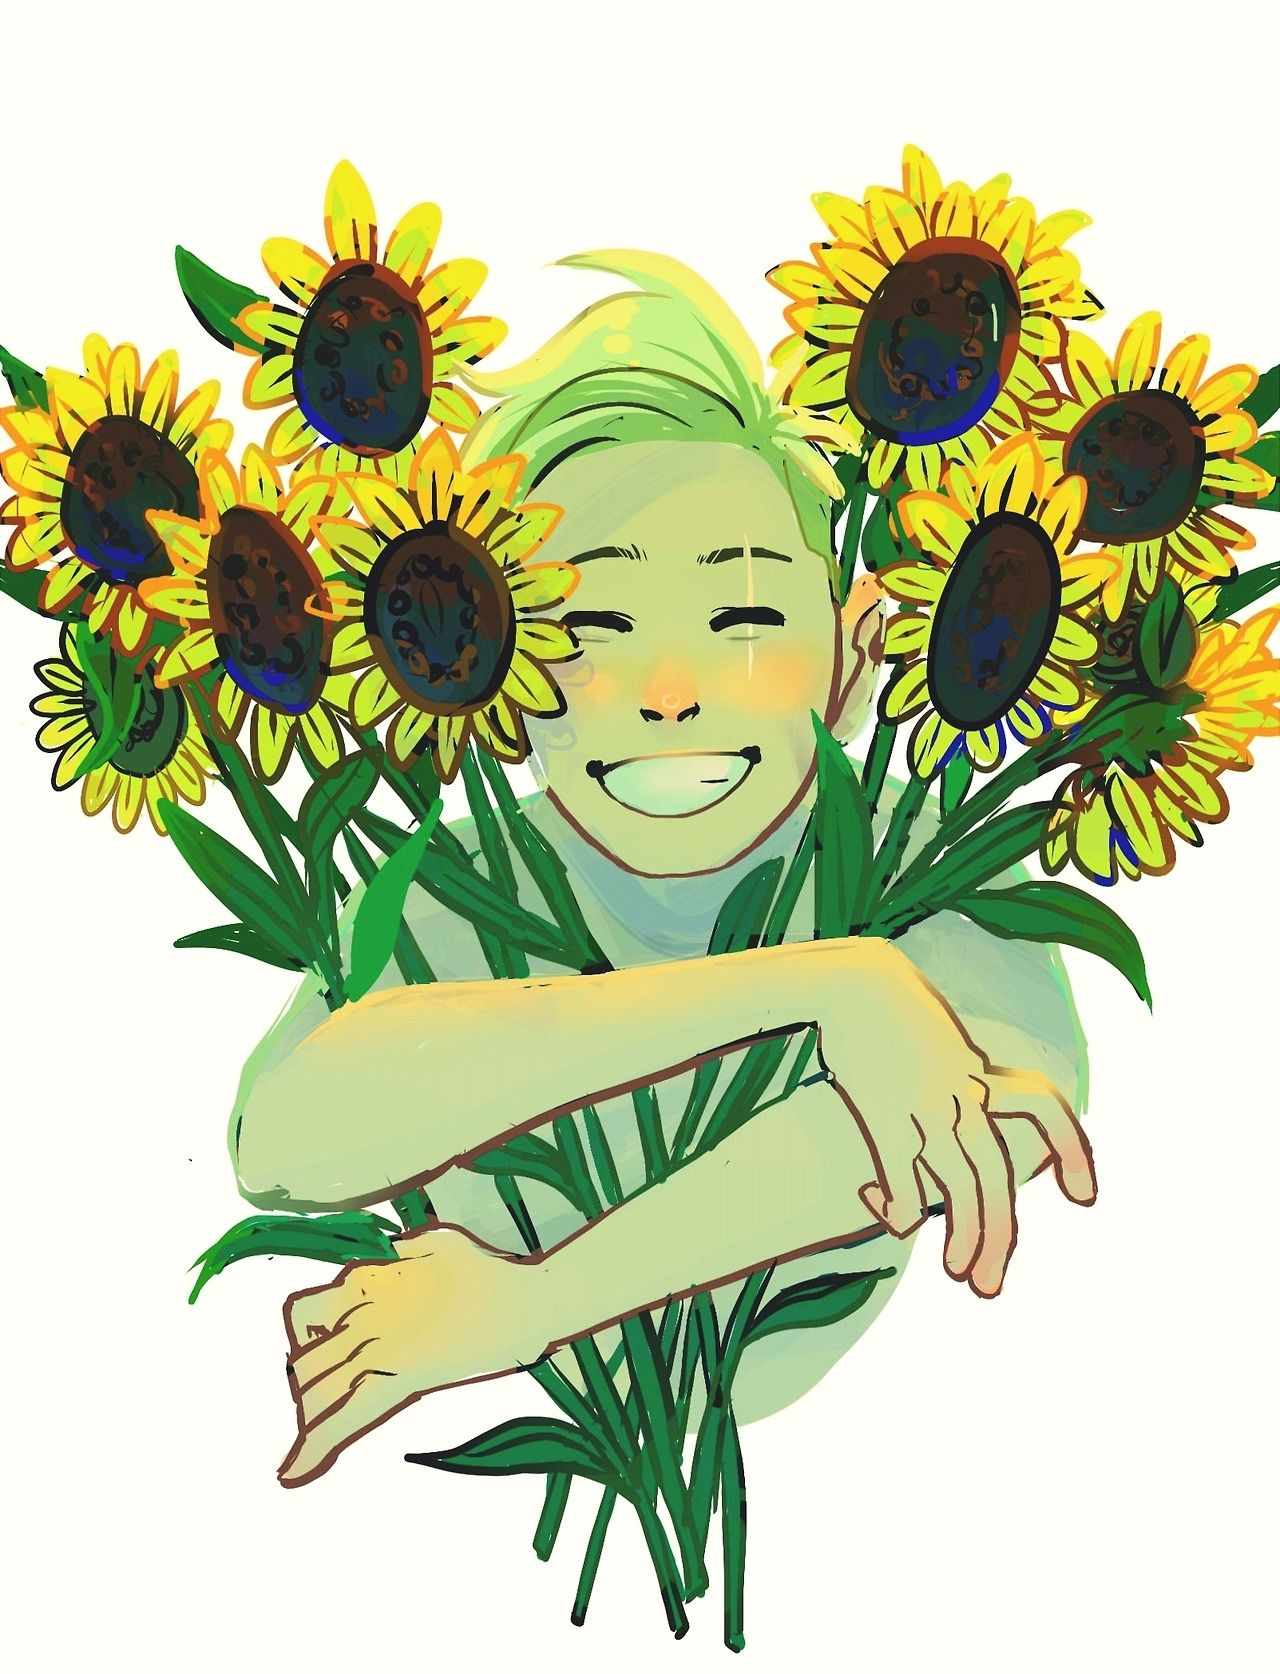 Fyll a young nature spirit with a sunny disposition and a love of